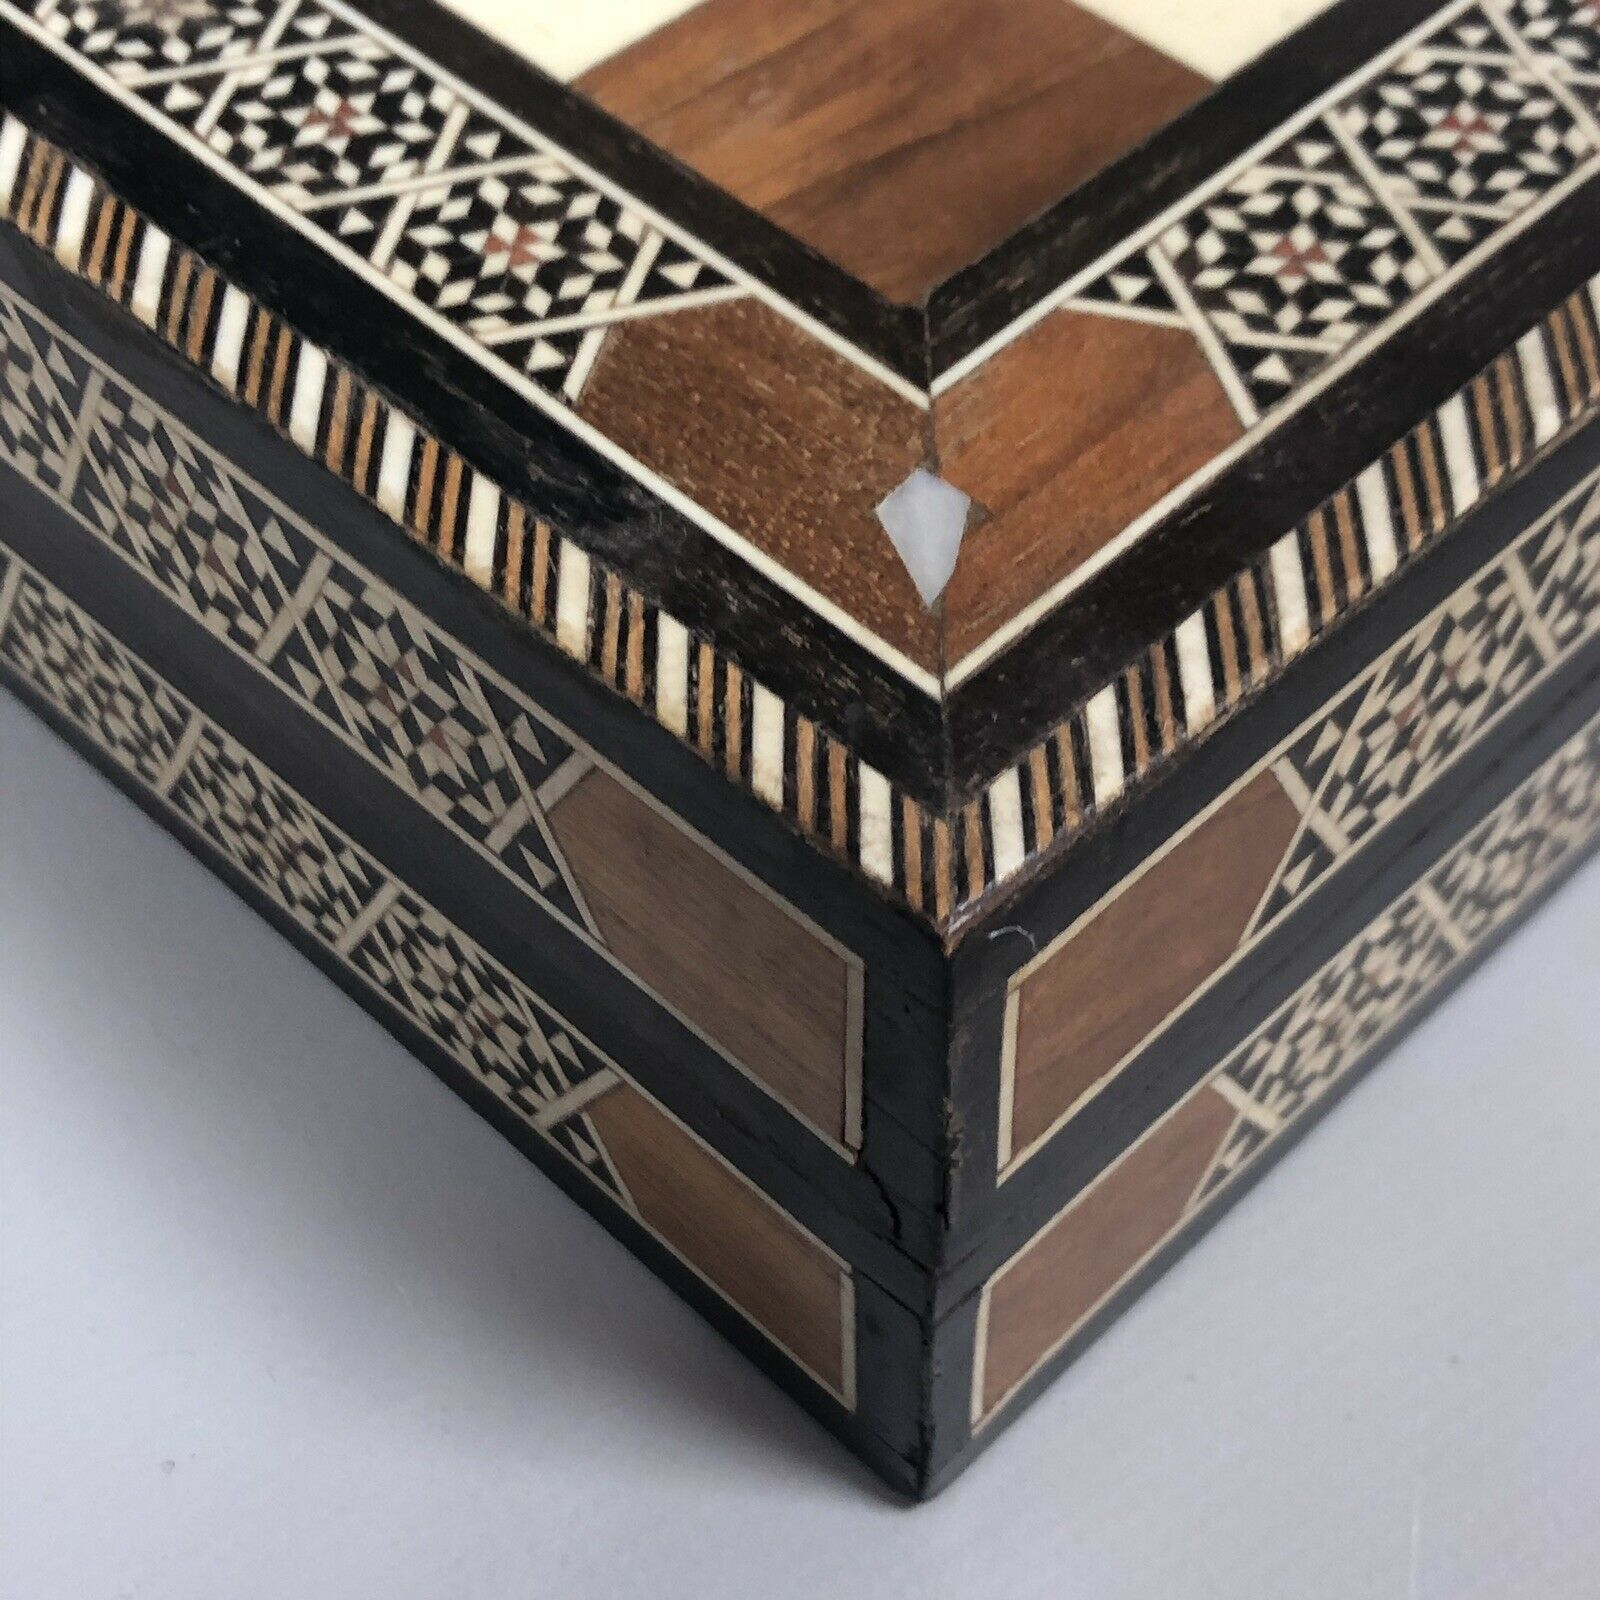 Lot 17 - Lovely Antique Syrian Marquetry Mosaic Inlaid Folding Chess Box Backgammon Box